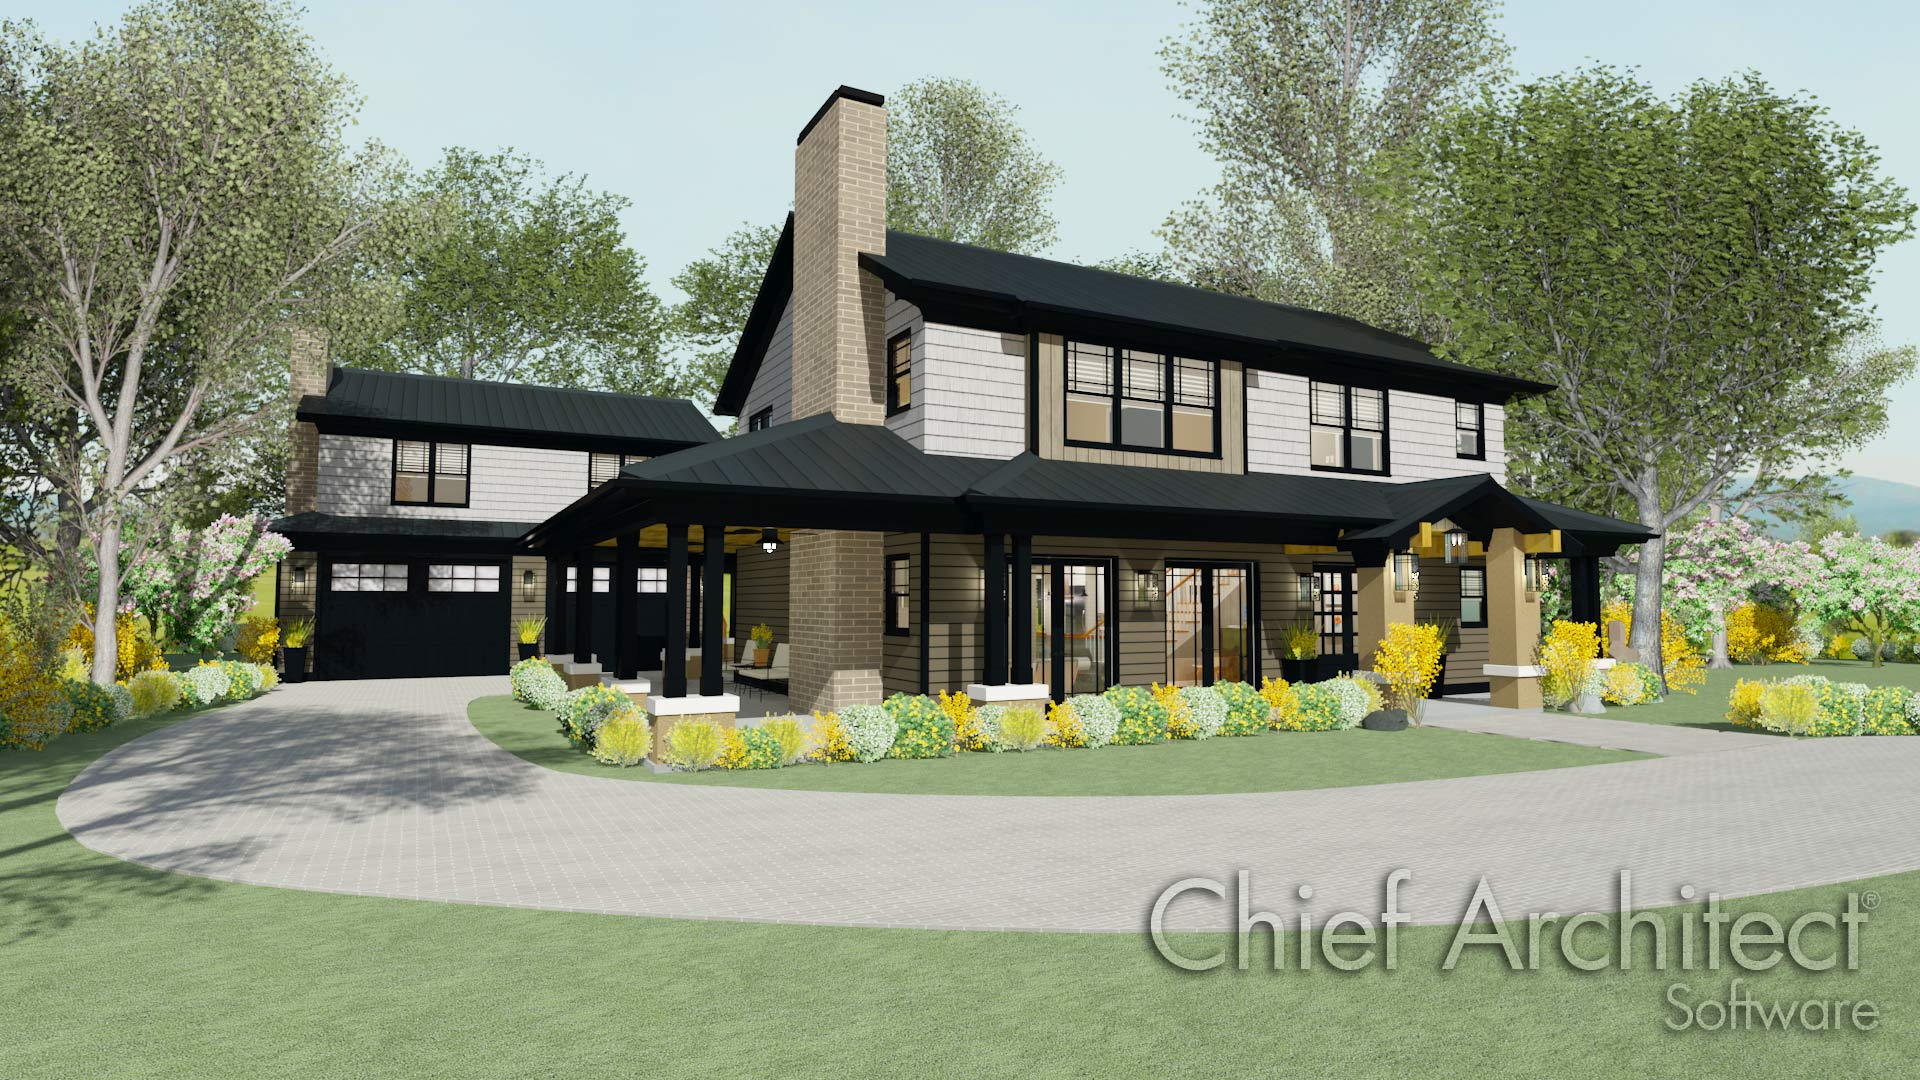 Chief architect home design software samples gallery for Home architectures